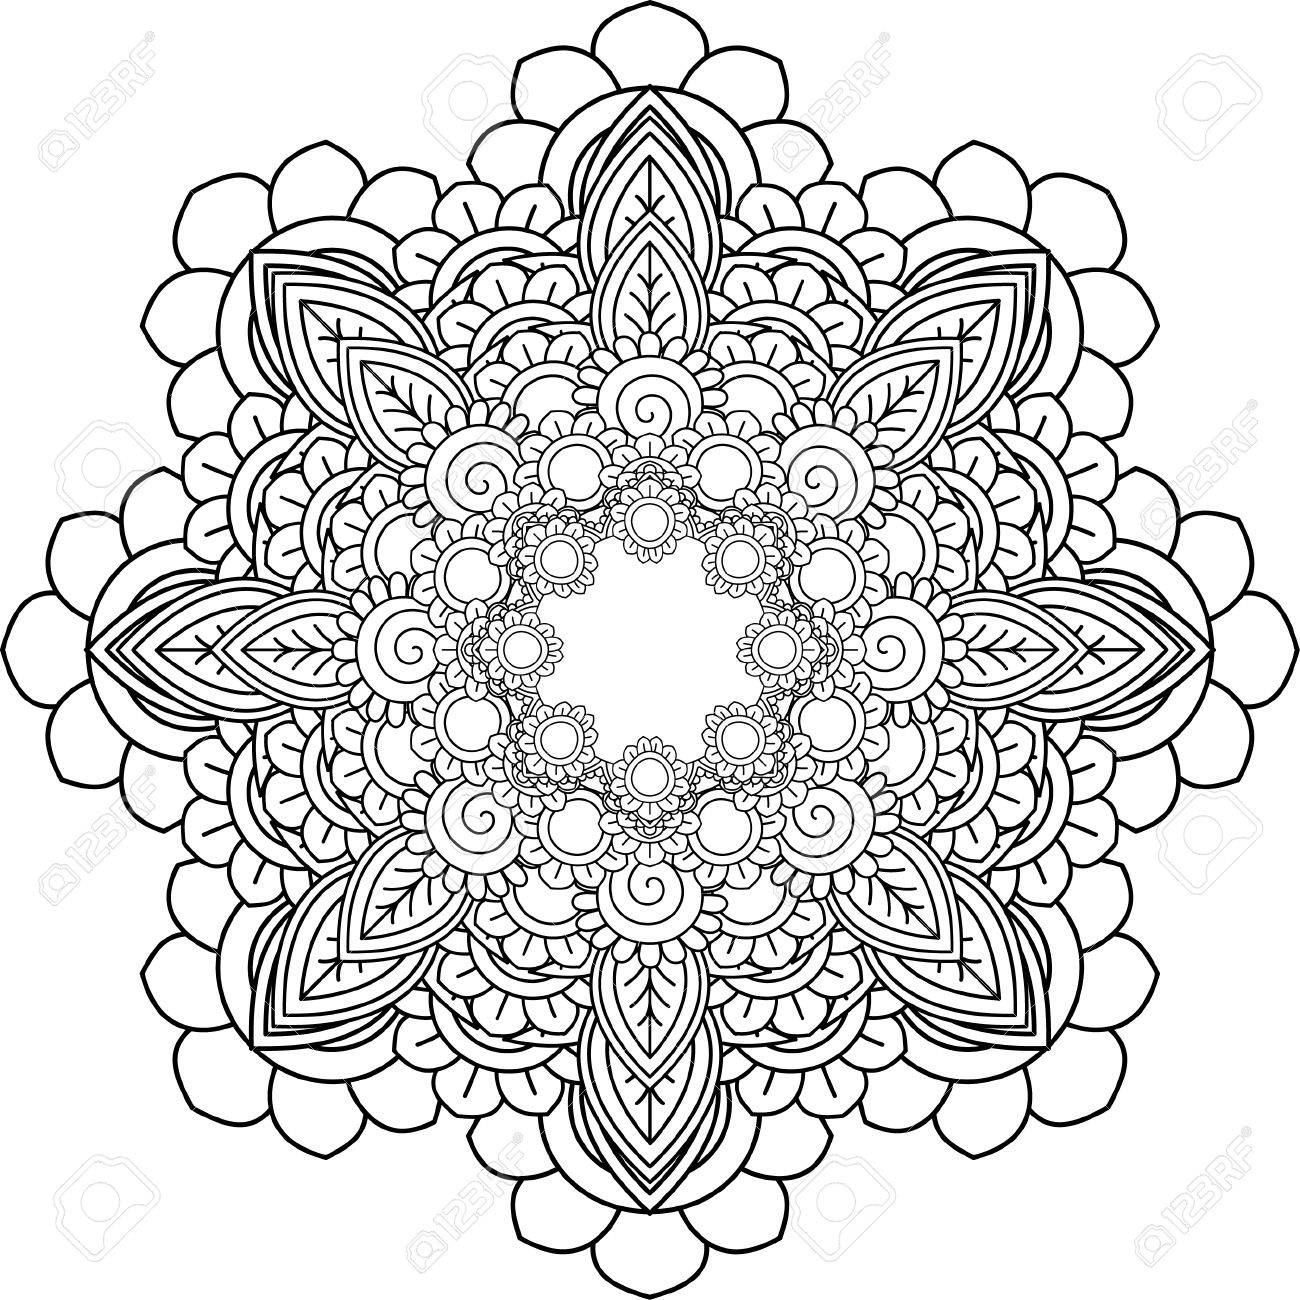 Meditation Mandalas, Drawing With Coloring Lines, On White ...